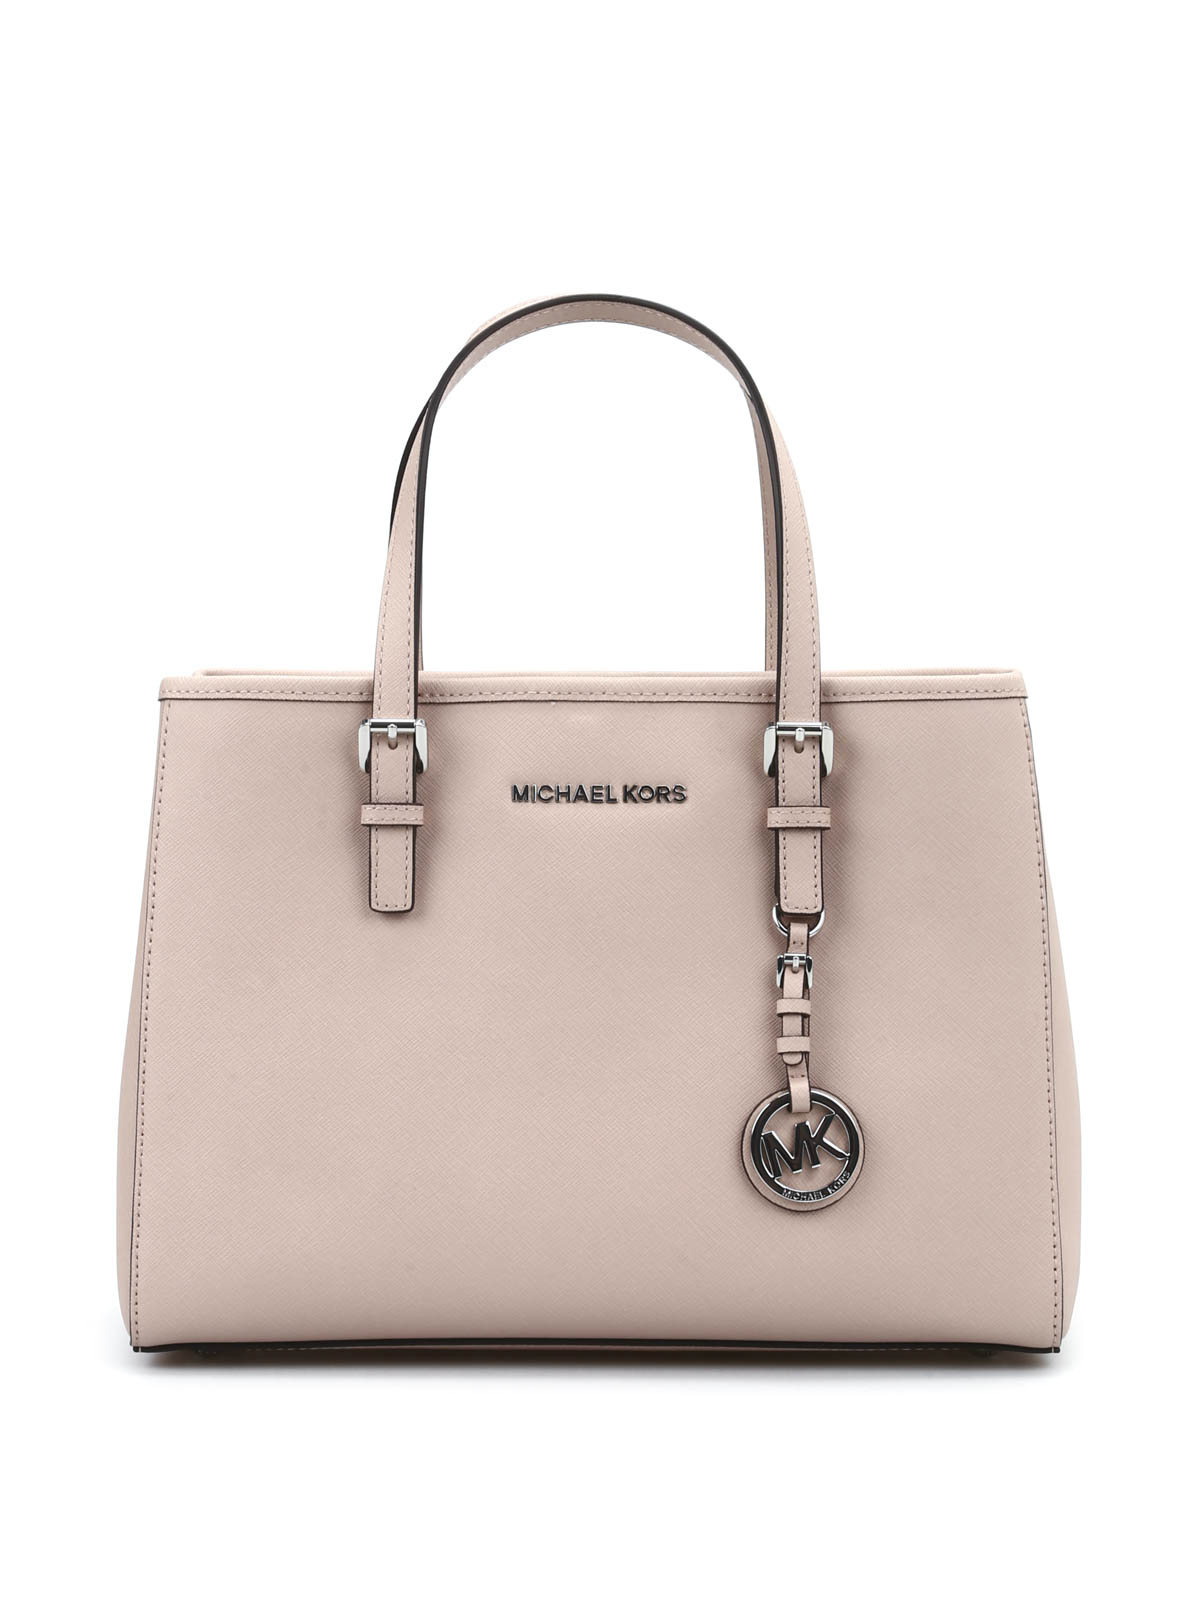 Michael Kors Jet Set Tote Laukku : Jet set medium tote by michael kors totes bags ikrix